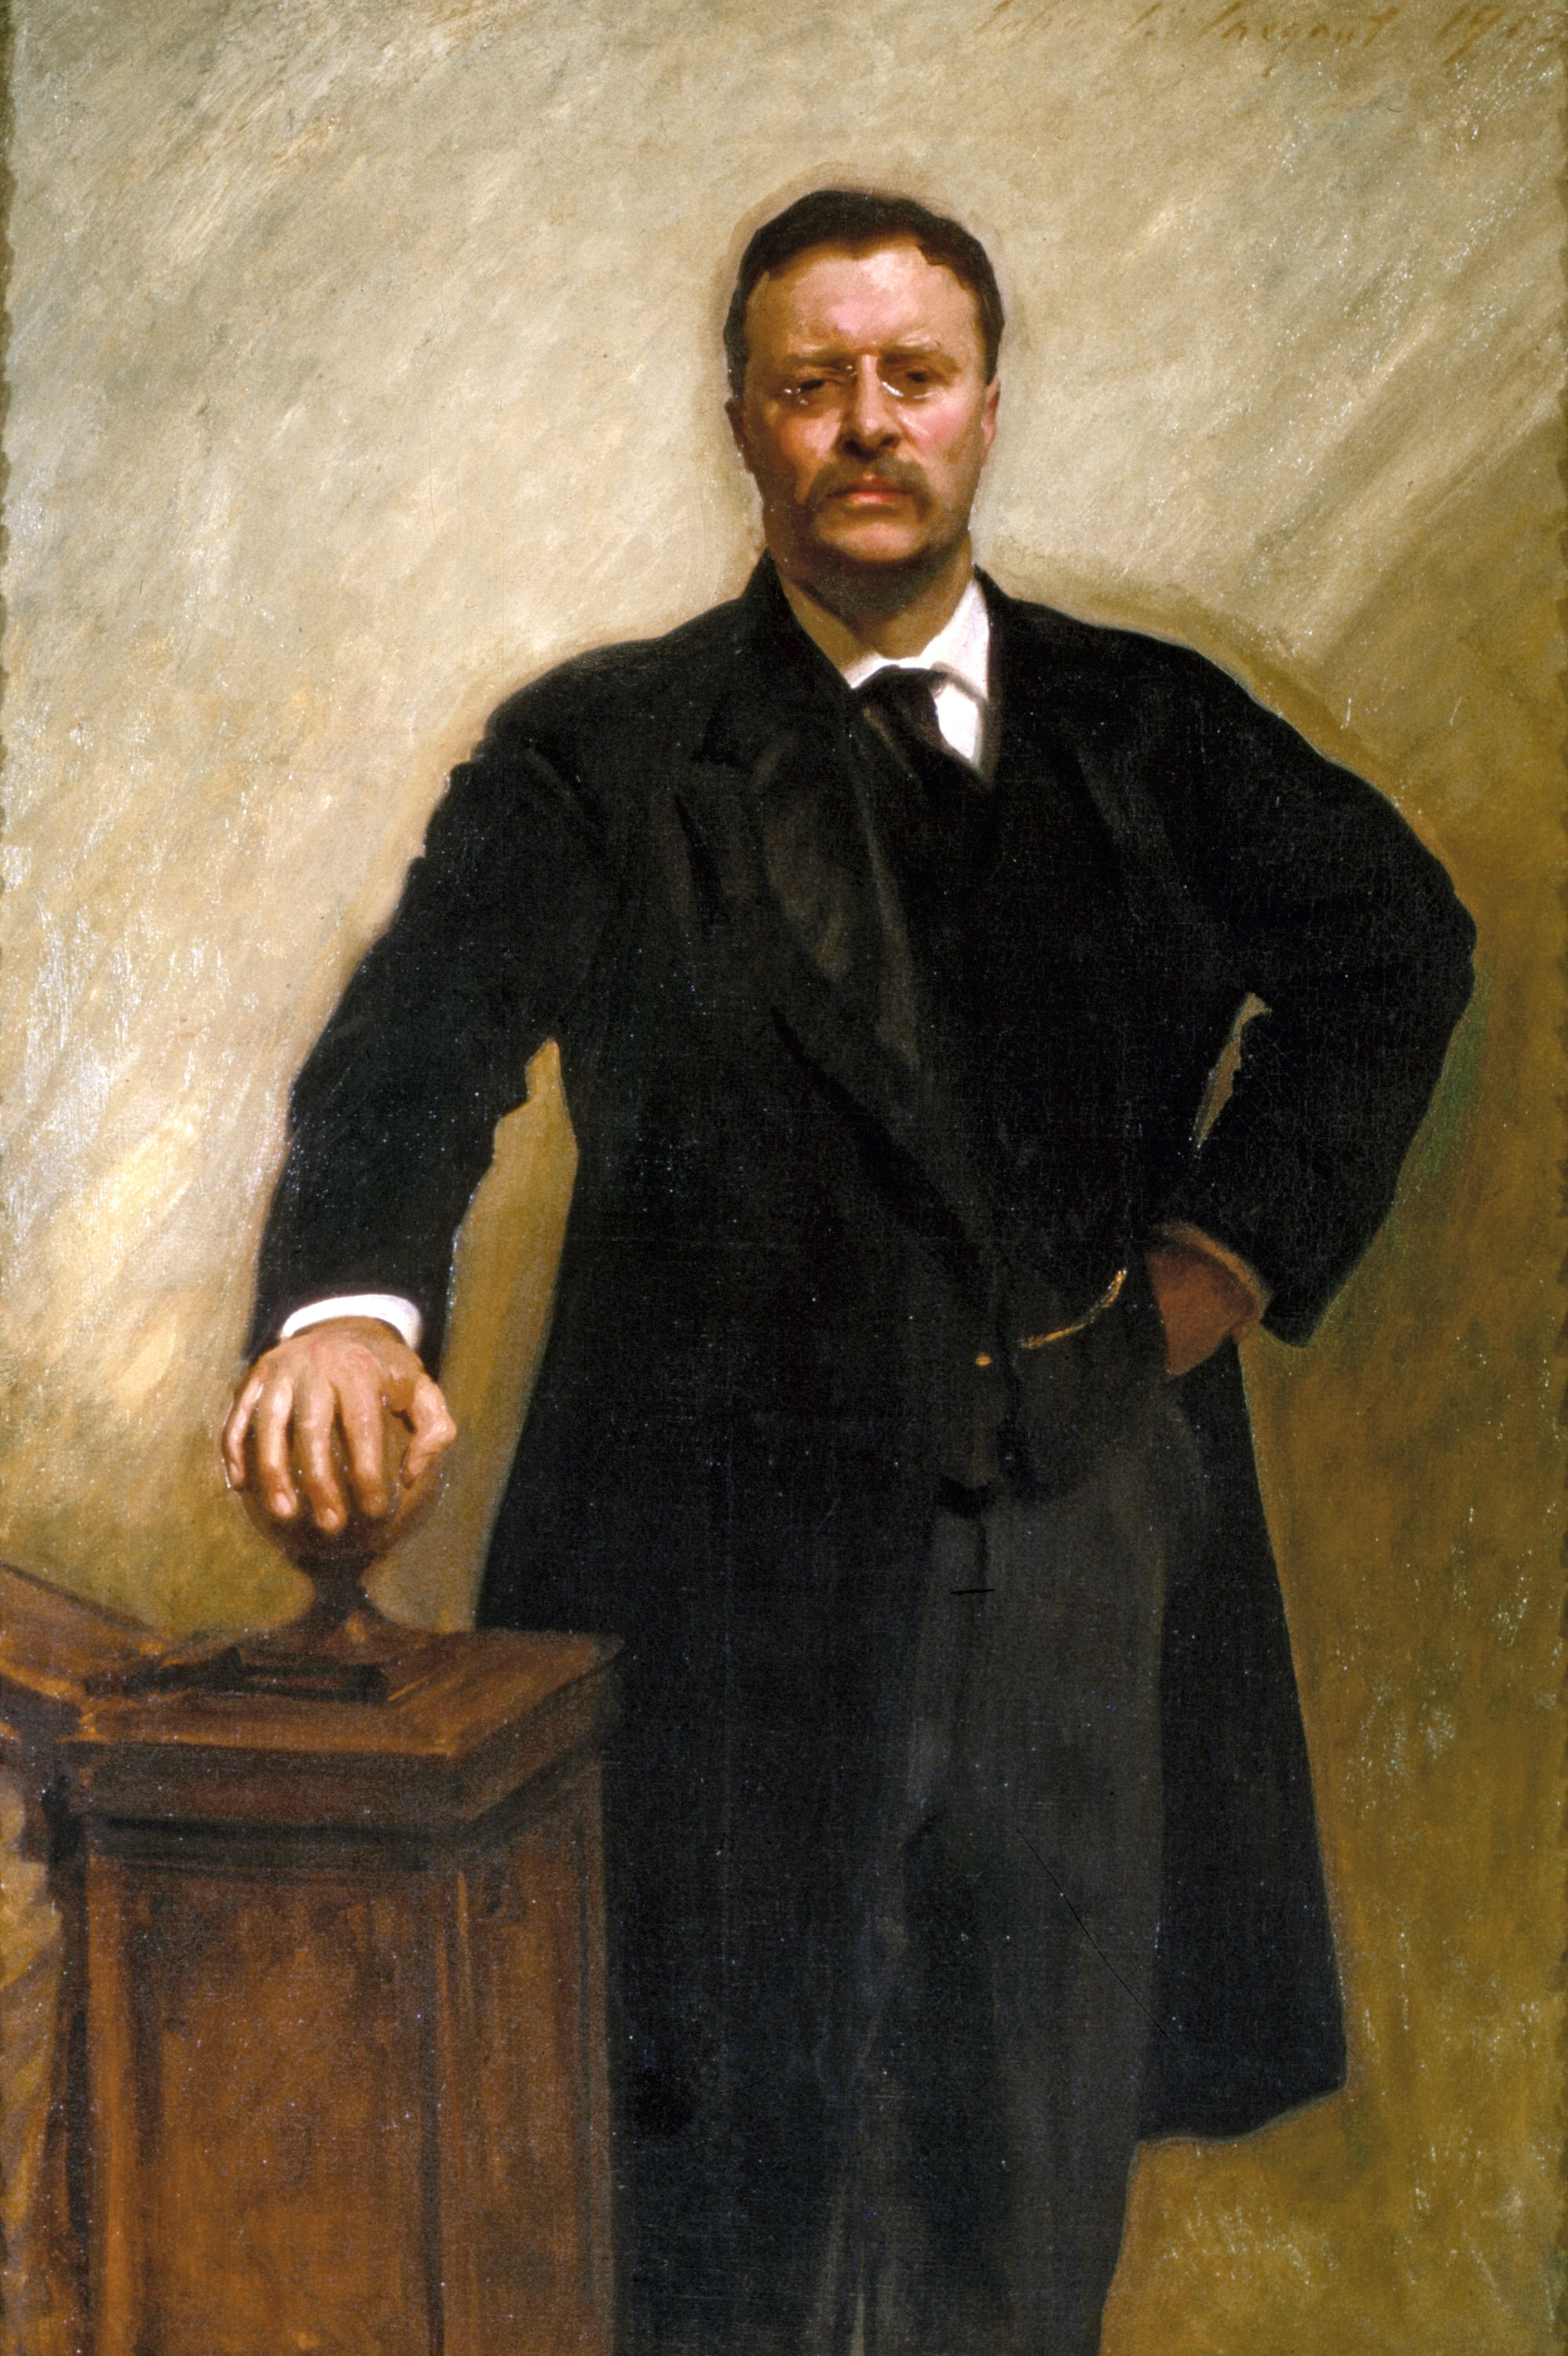 http://upload.wikimedia.org/wikipedia/commons/2/22/Theodore_Roosevelt_by_John_Singer_Sargent,_1903.jpg